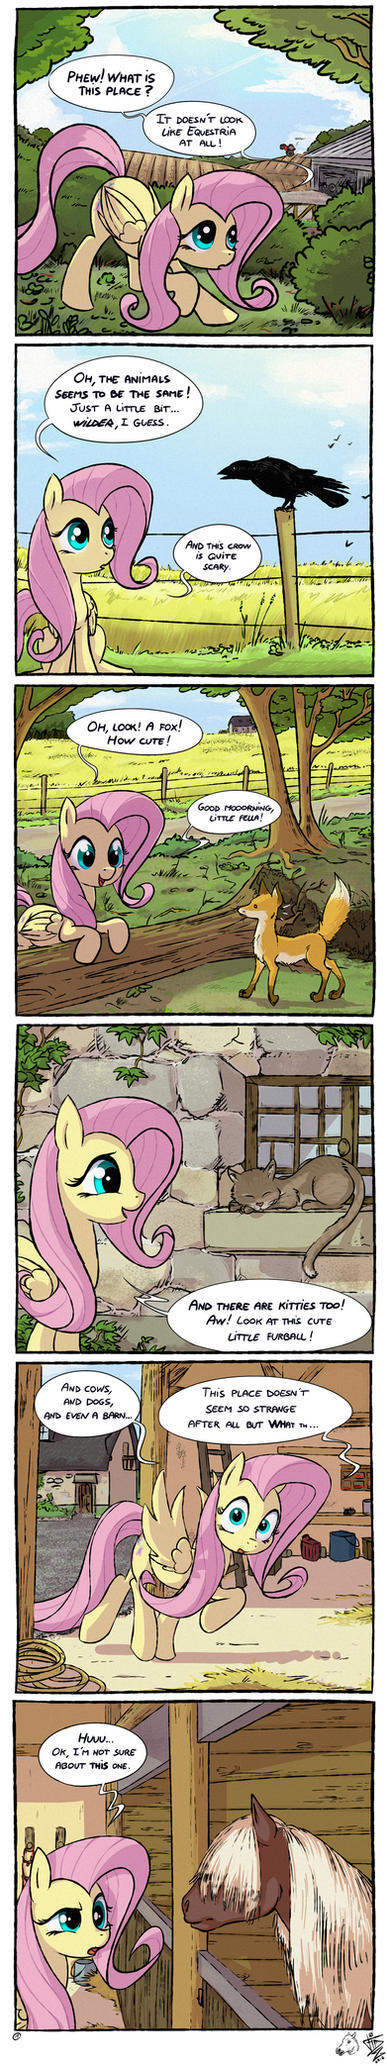 MLP Meets Real World 01: Similarities by FidzFox